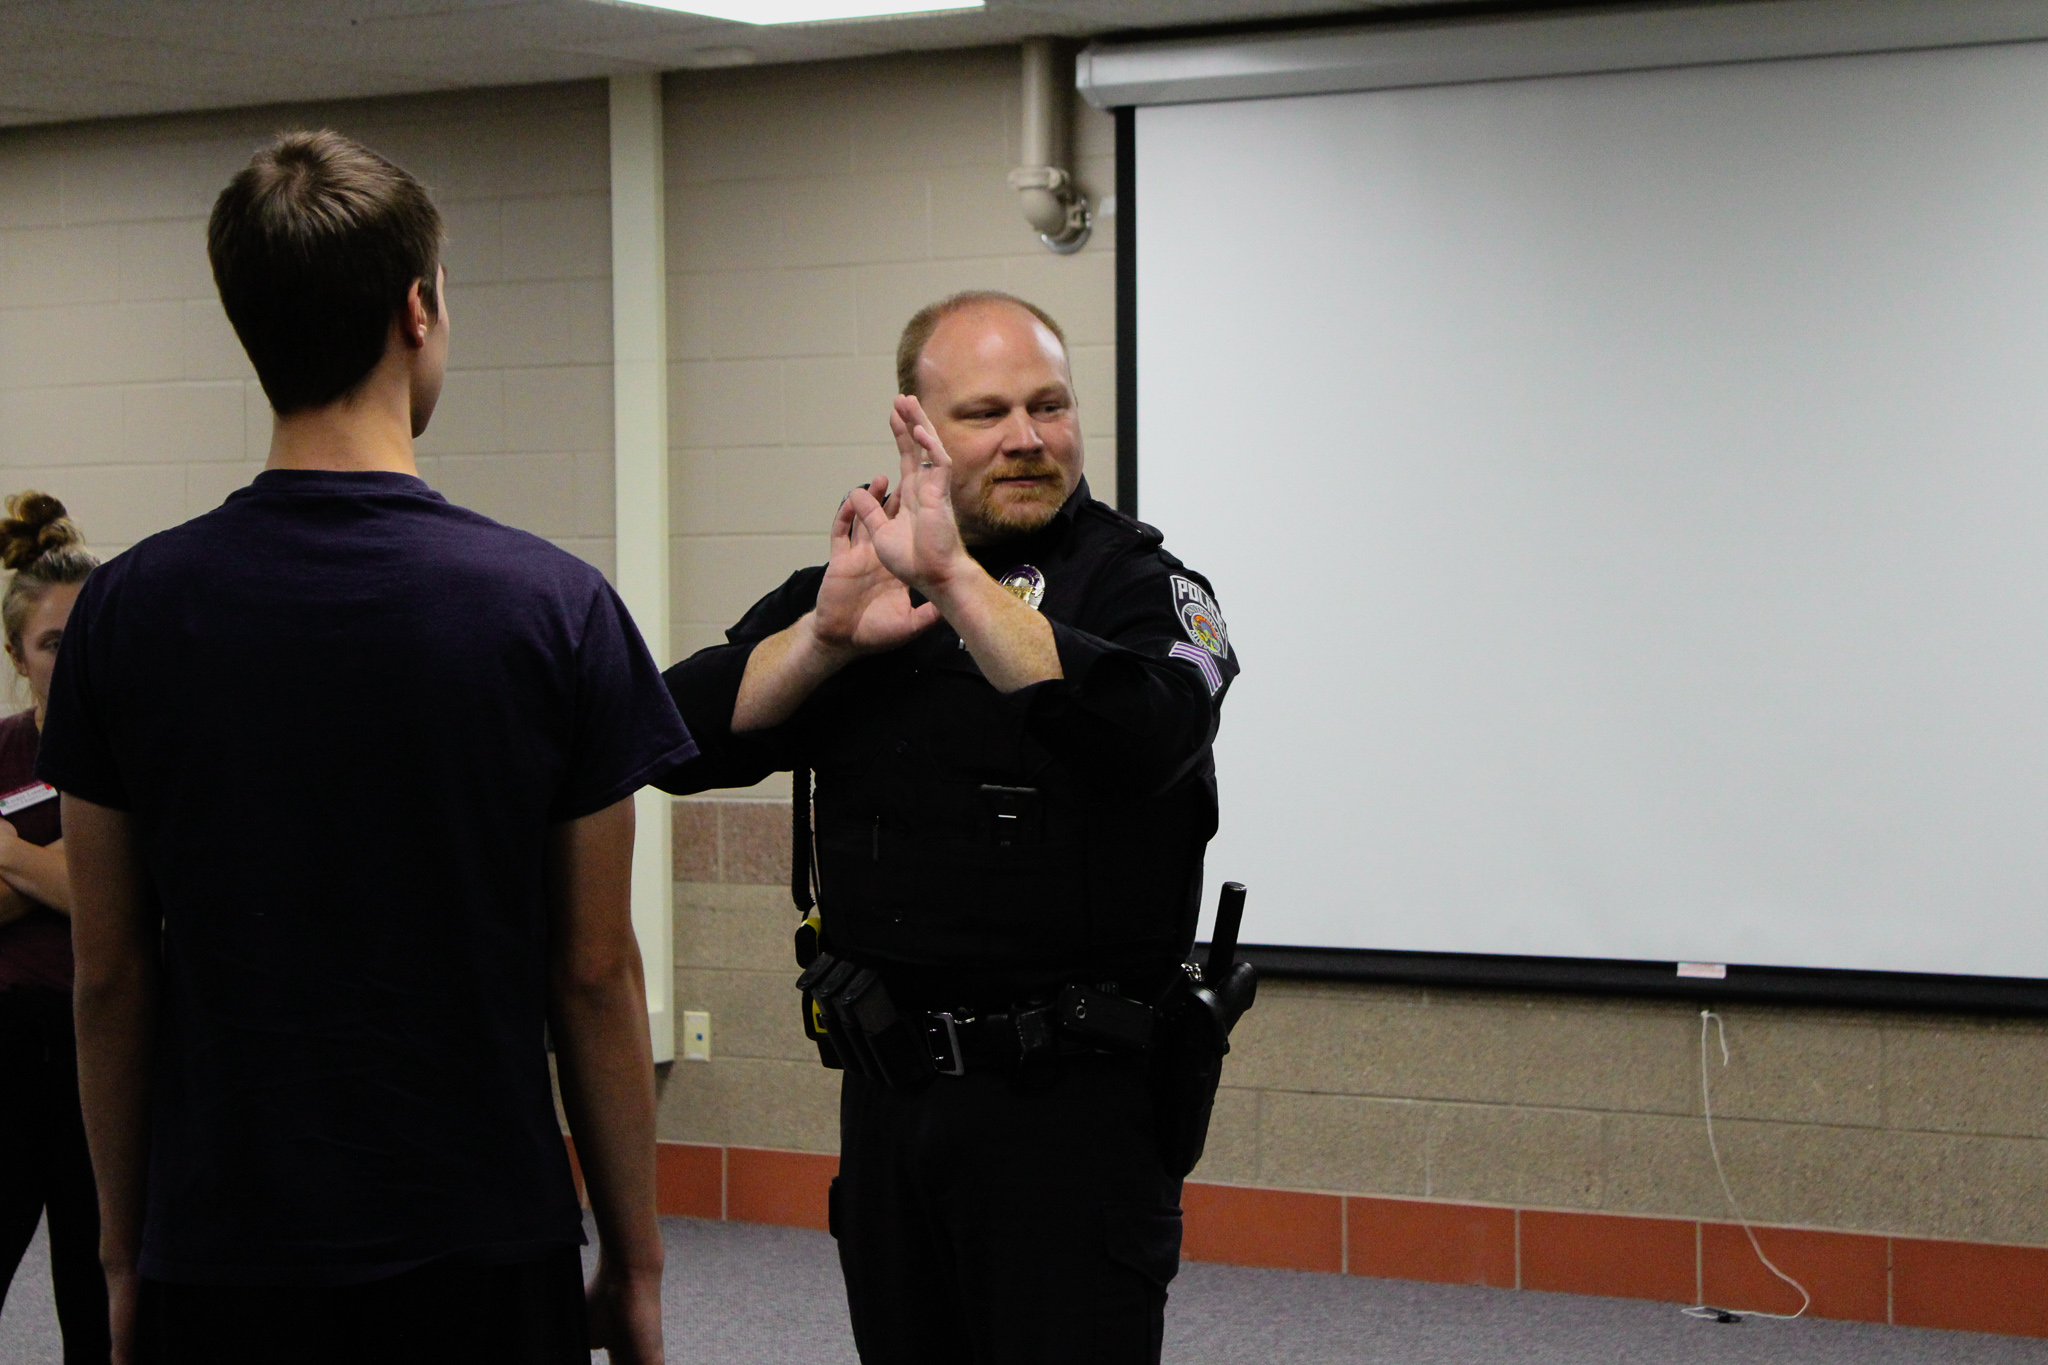 Sgt. Chris Shovein with the UMDPD demonstrates self-defense techniques. Photo by: Morgan Pint